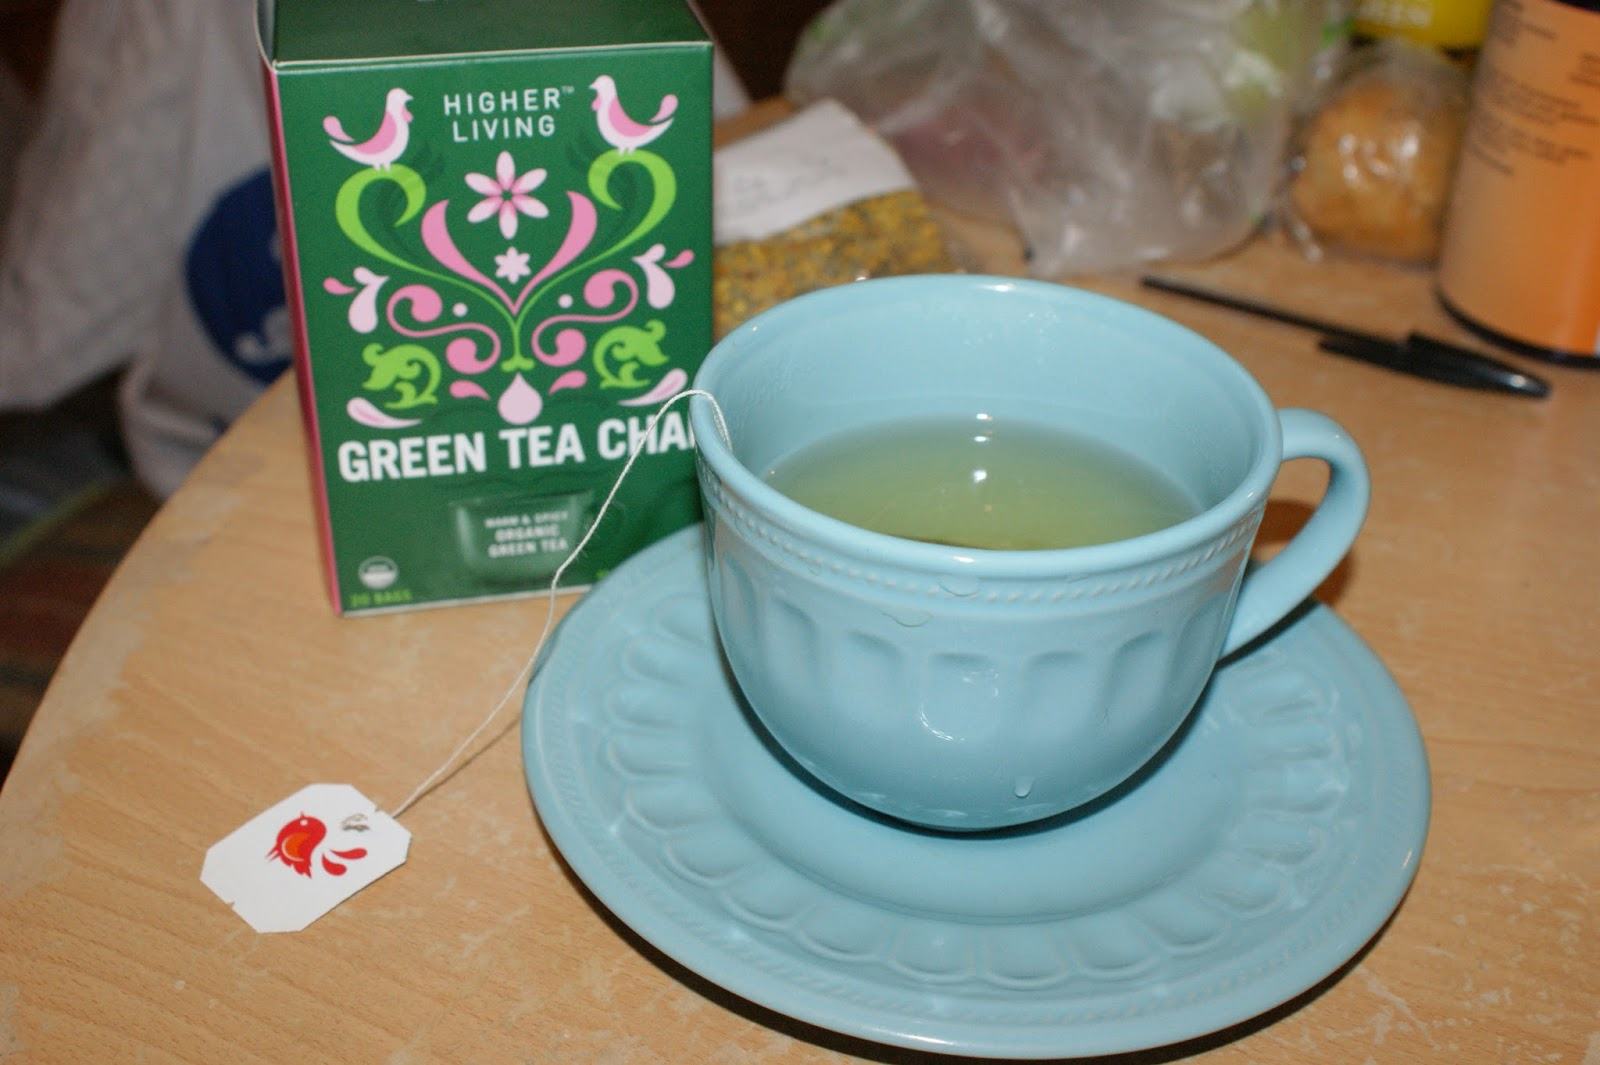 higher living green tea chai